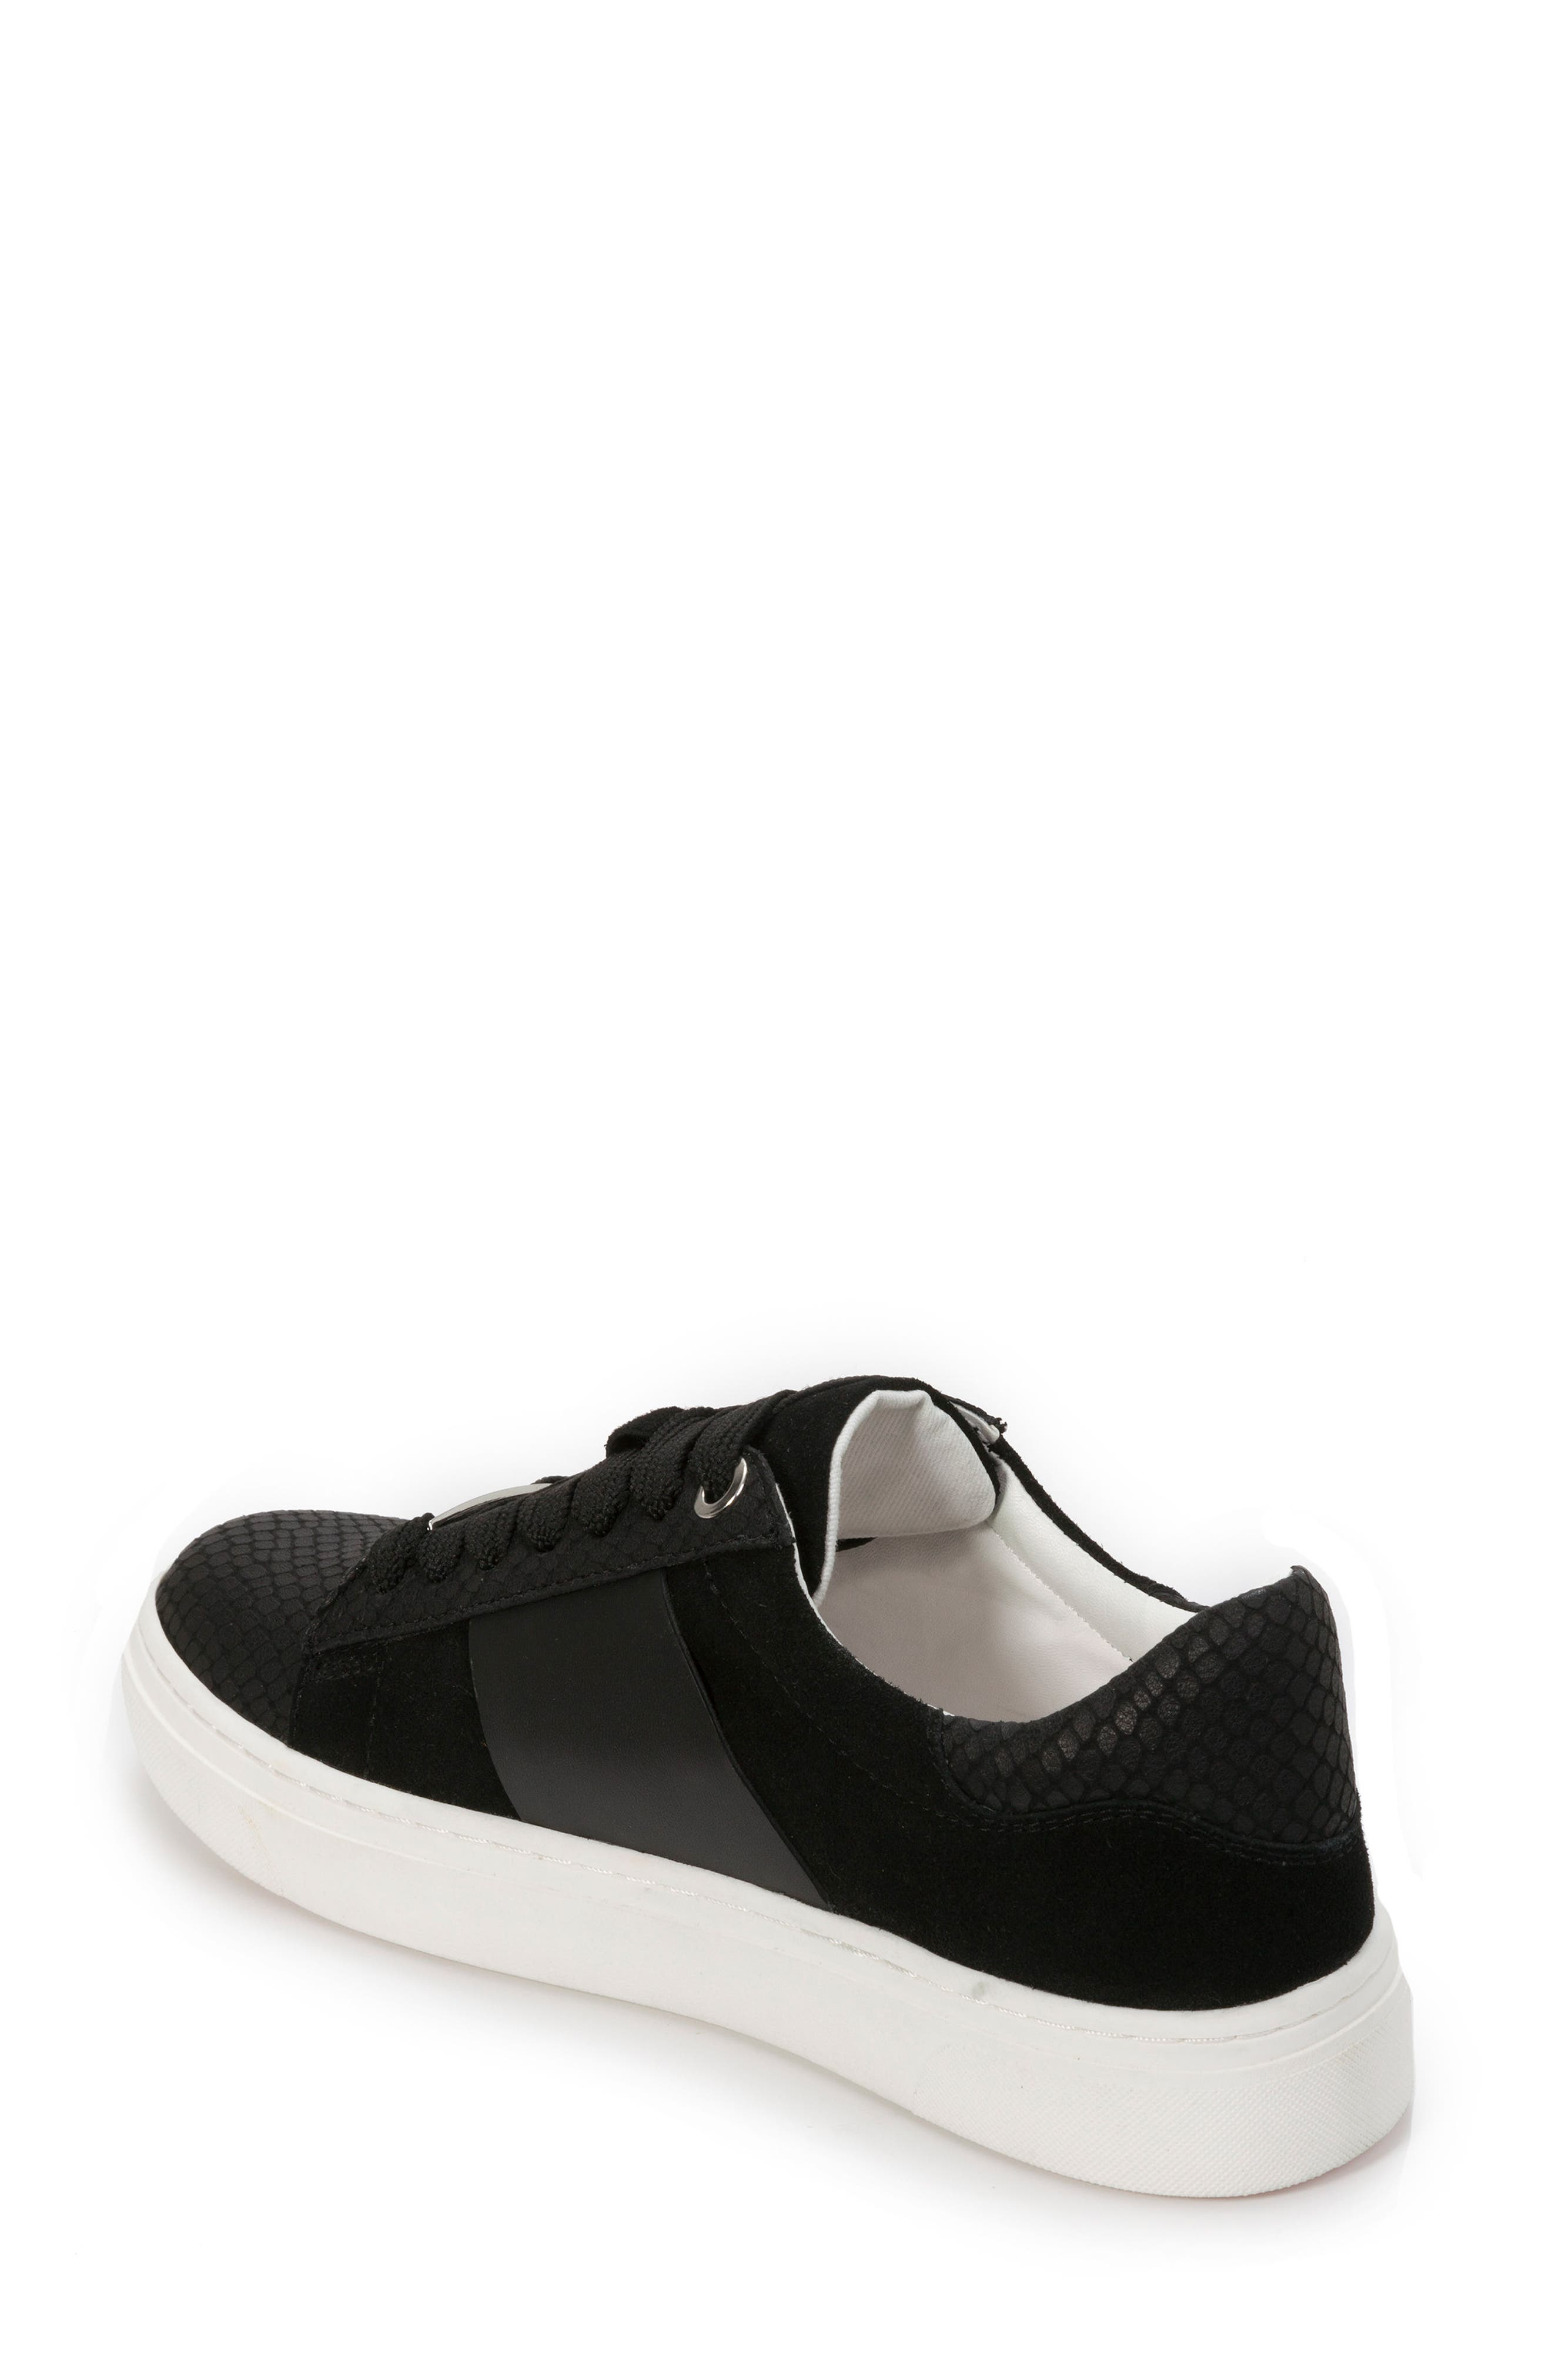 Fallon Sneaker,                             Alternate thumbnail 2, color,                             BLACK SUEDE